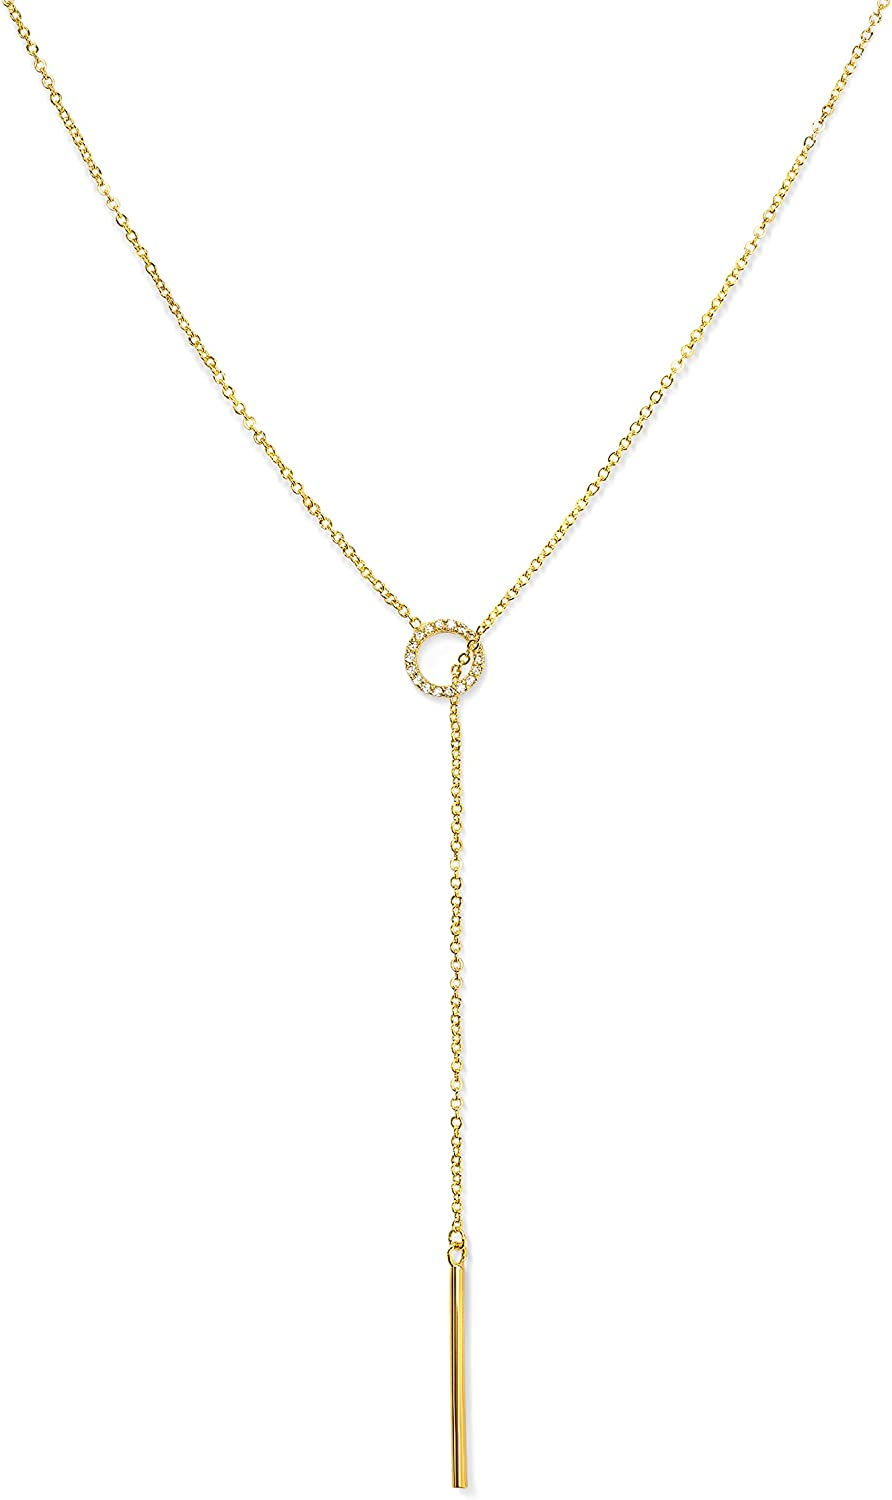 Long Gold Chain Lariat Necklace Dainty Open Necklace with Pearl Open End Y Necklace for Women Minimalist Delicate Statement Jewelry Gift